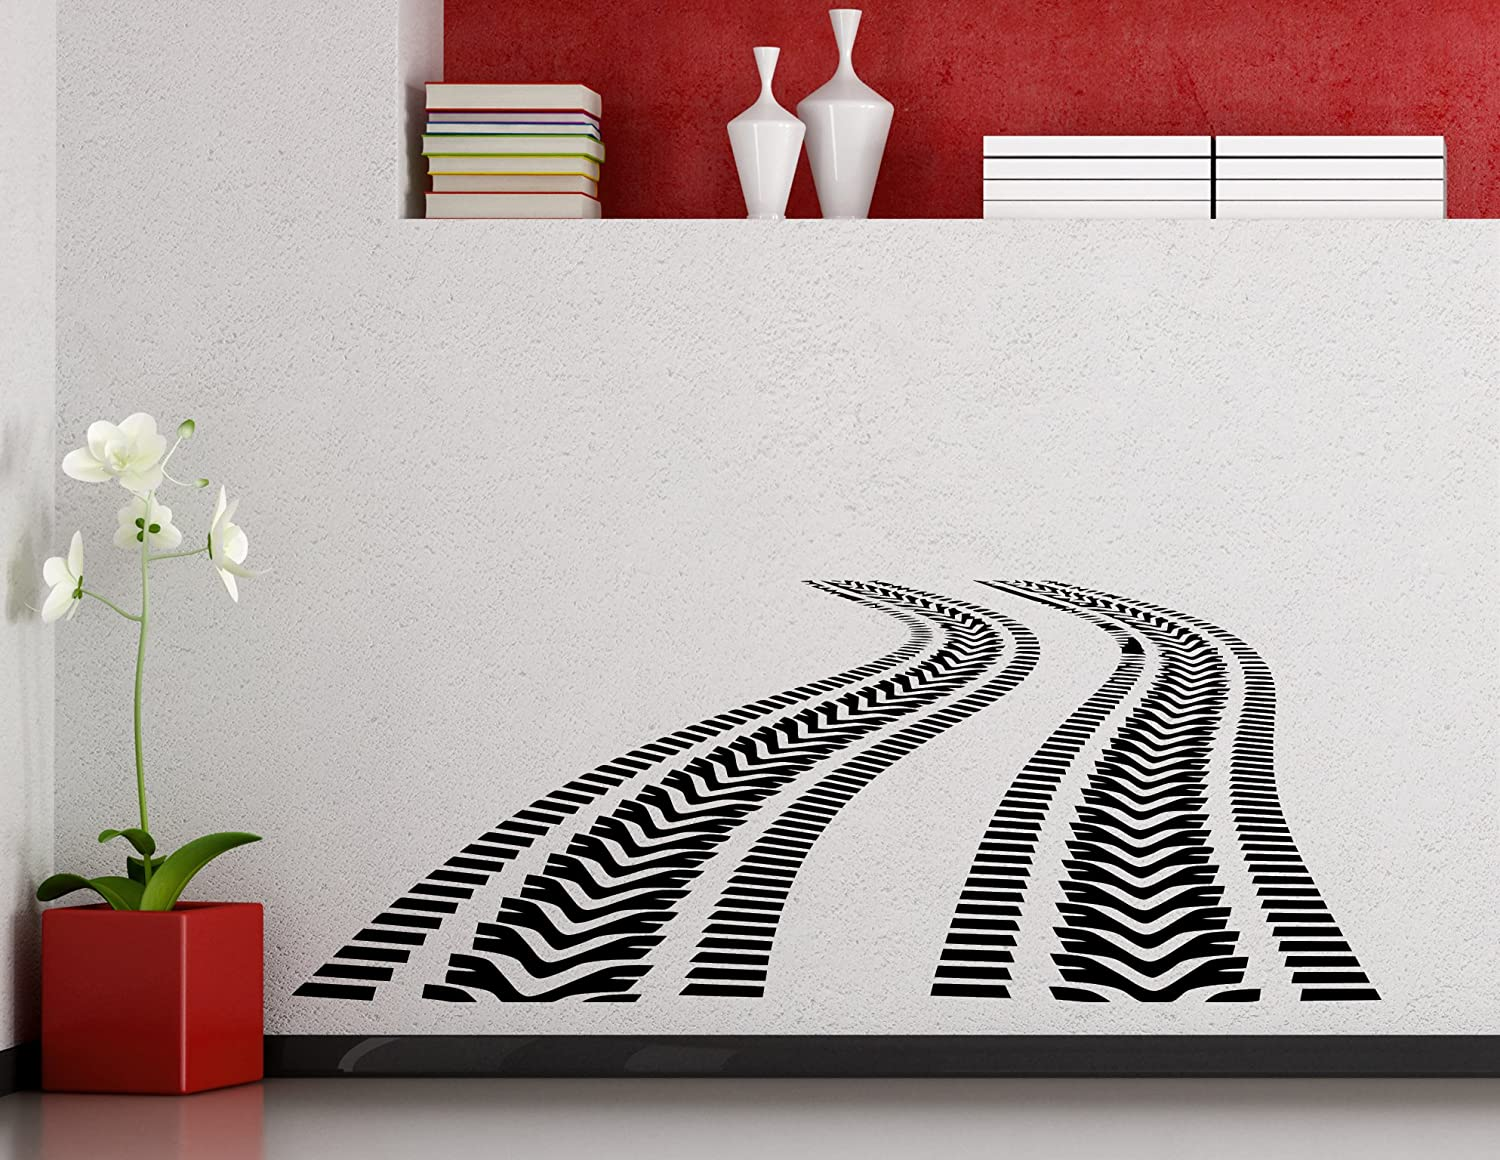 Tire Tracks Attention brand Wall Decal Car Long Beach Mall Road Vinyl Garage with of Traces